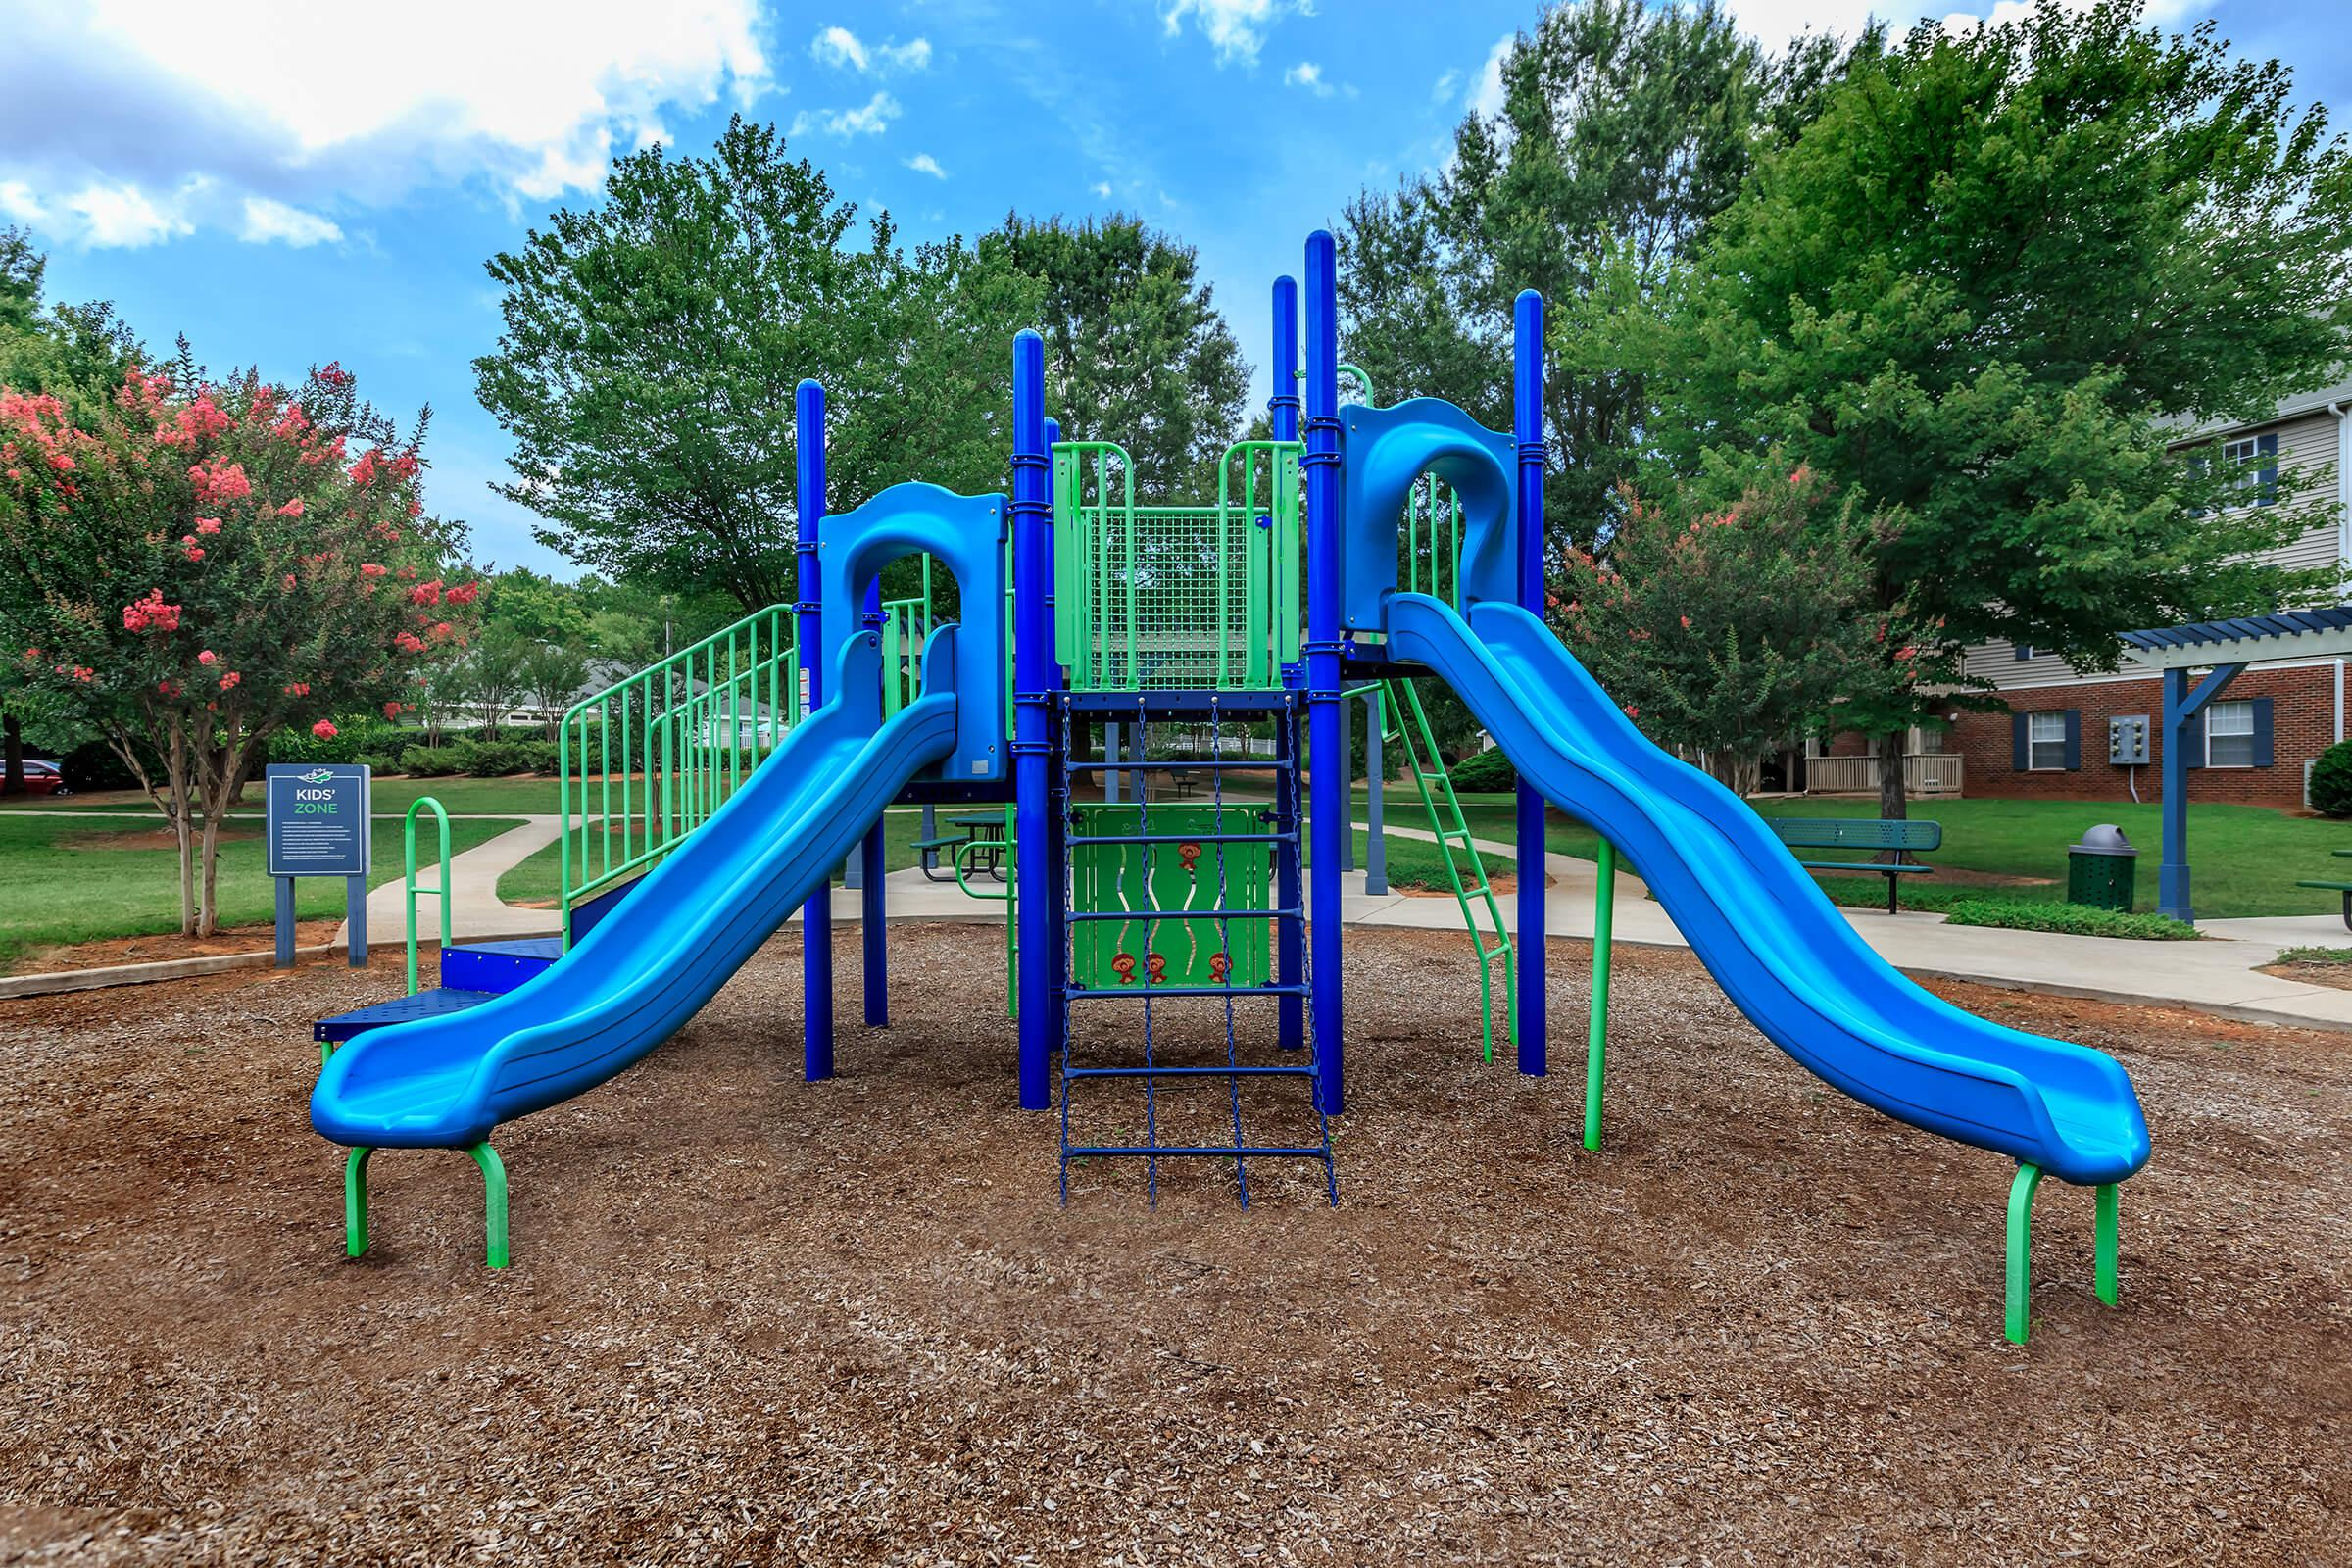 a playground with a blue seat sitting in a chair